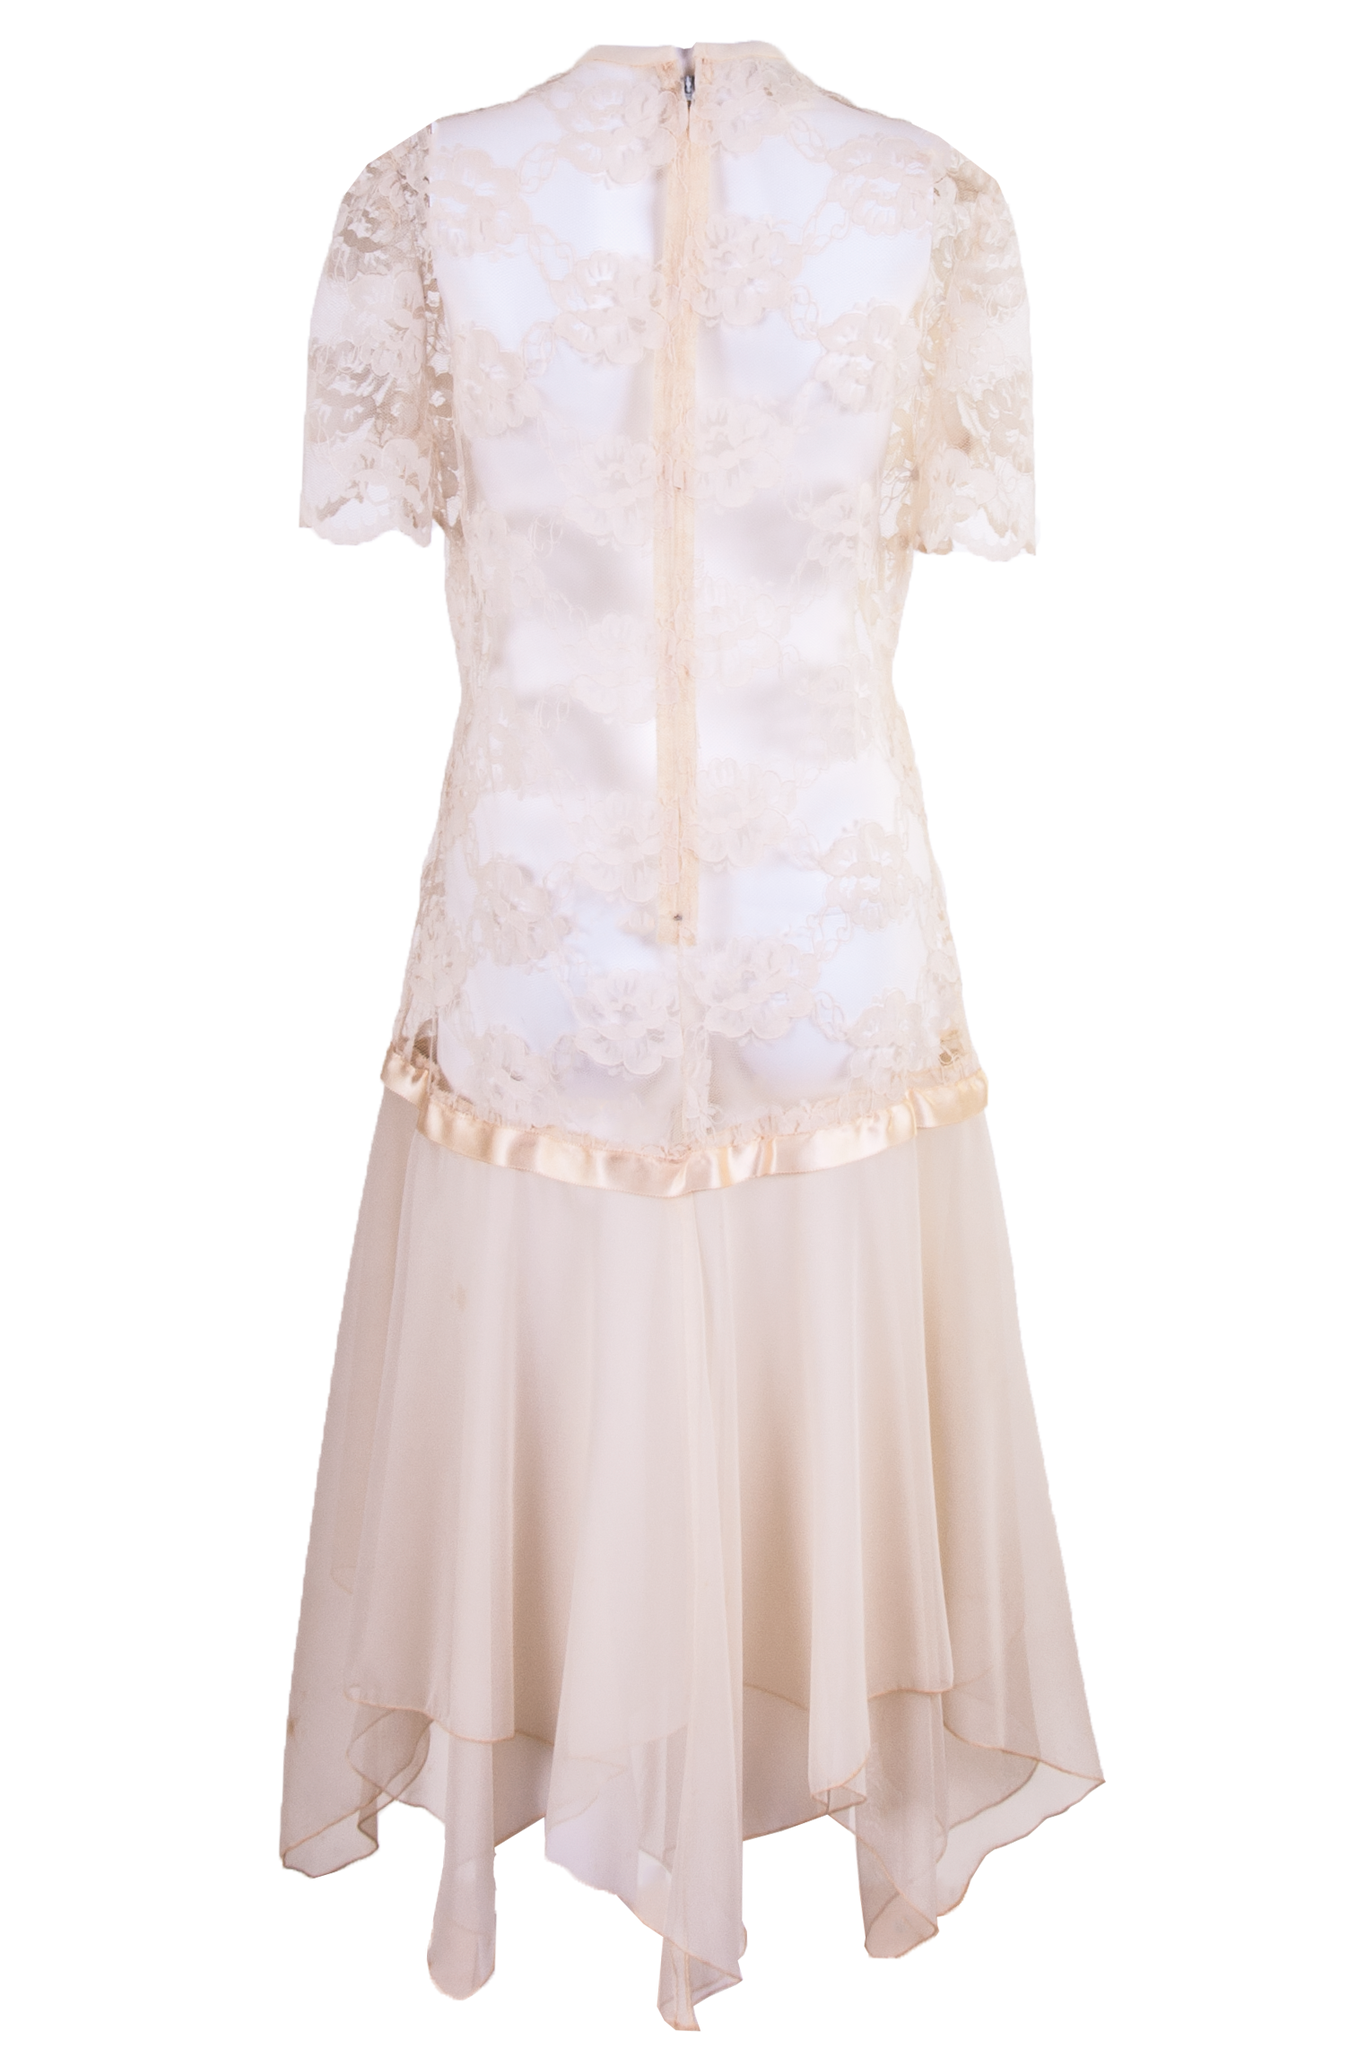 vintage tea party wedding dress in cream